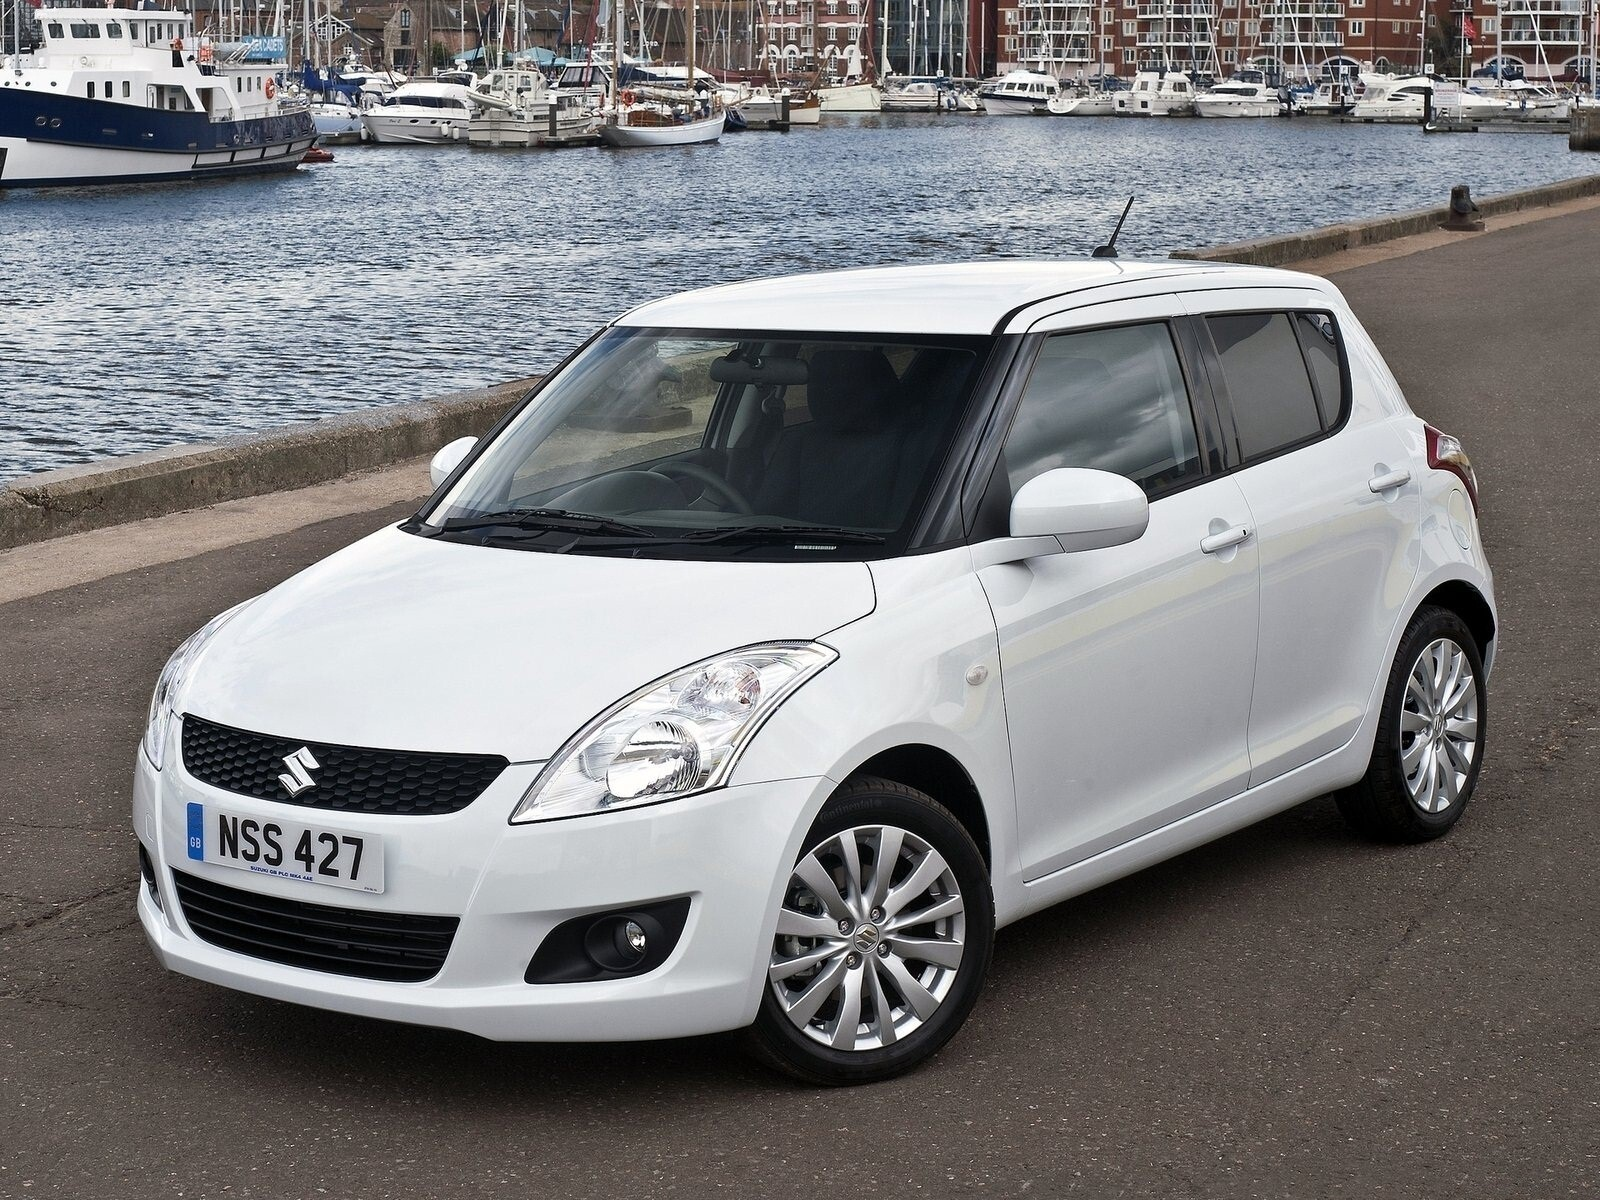 Suzuki White Swift Car Wallpaper Hd Wallpapers